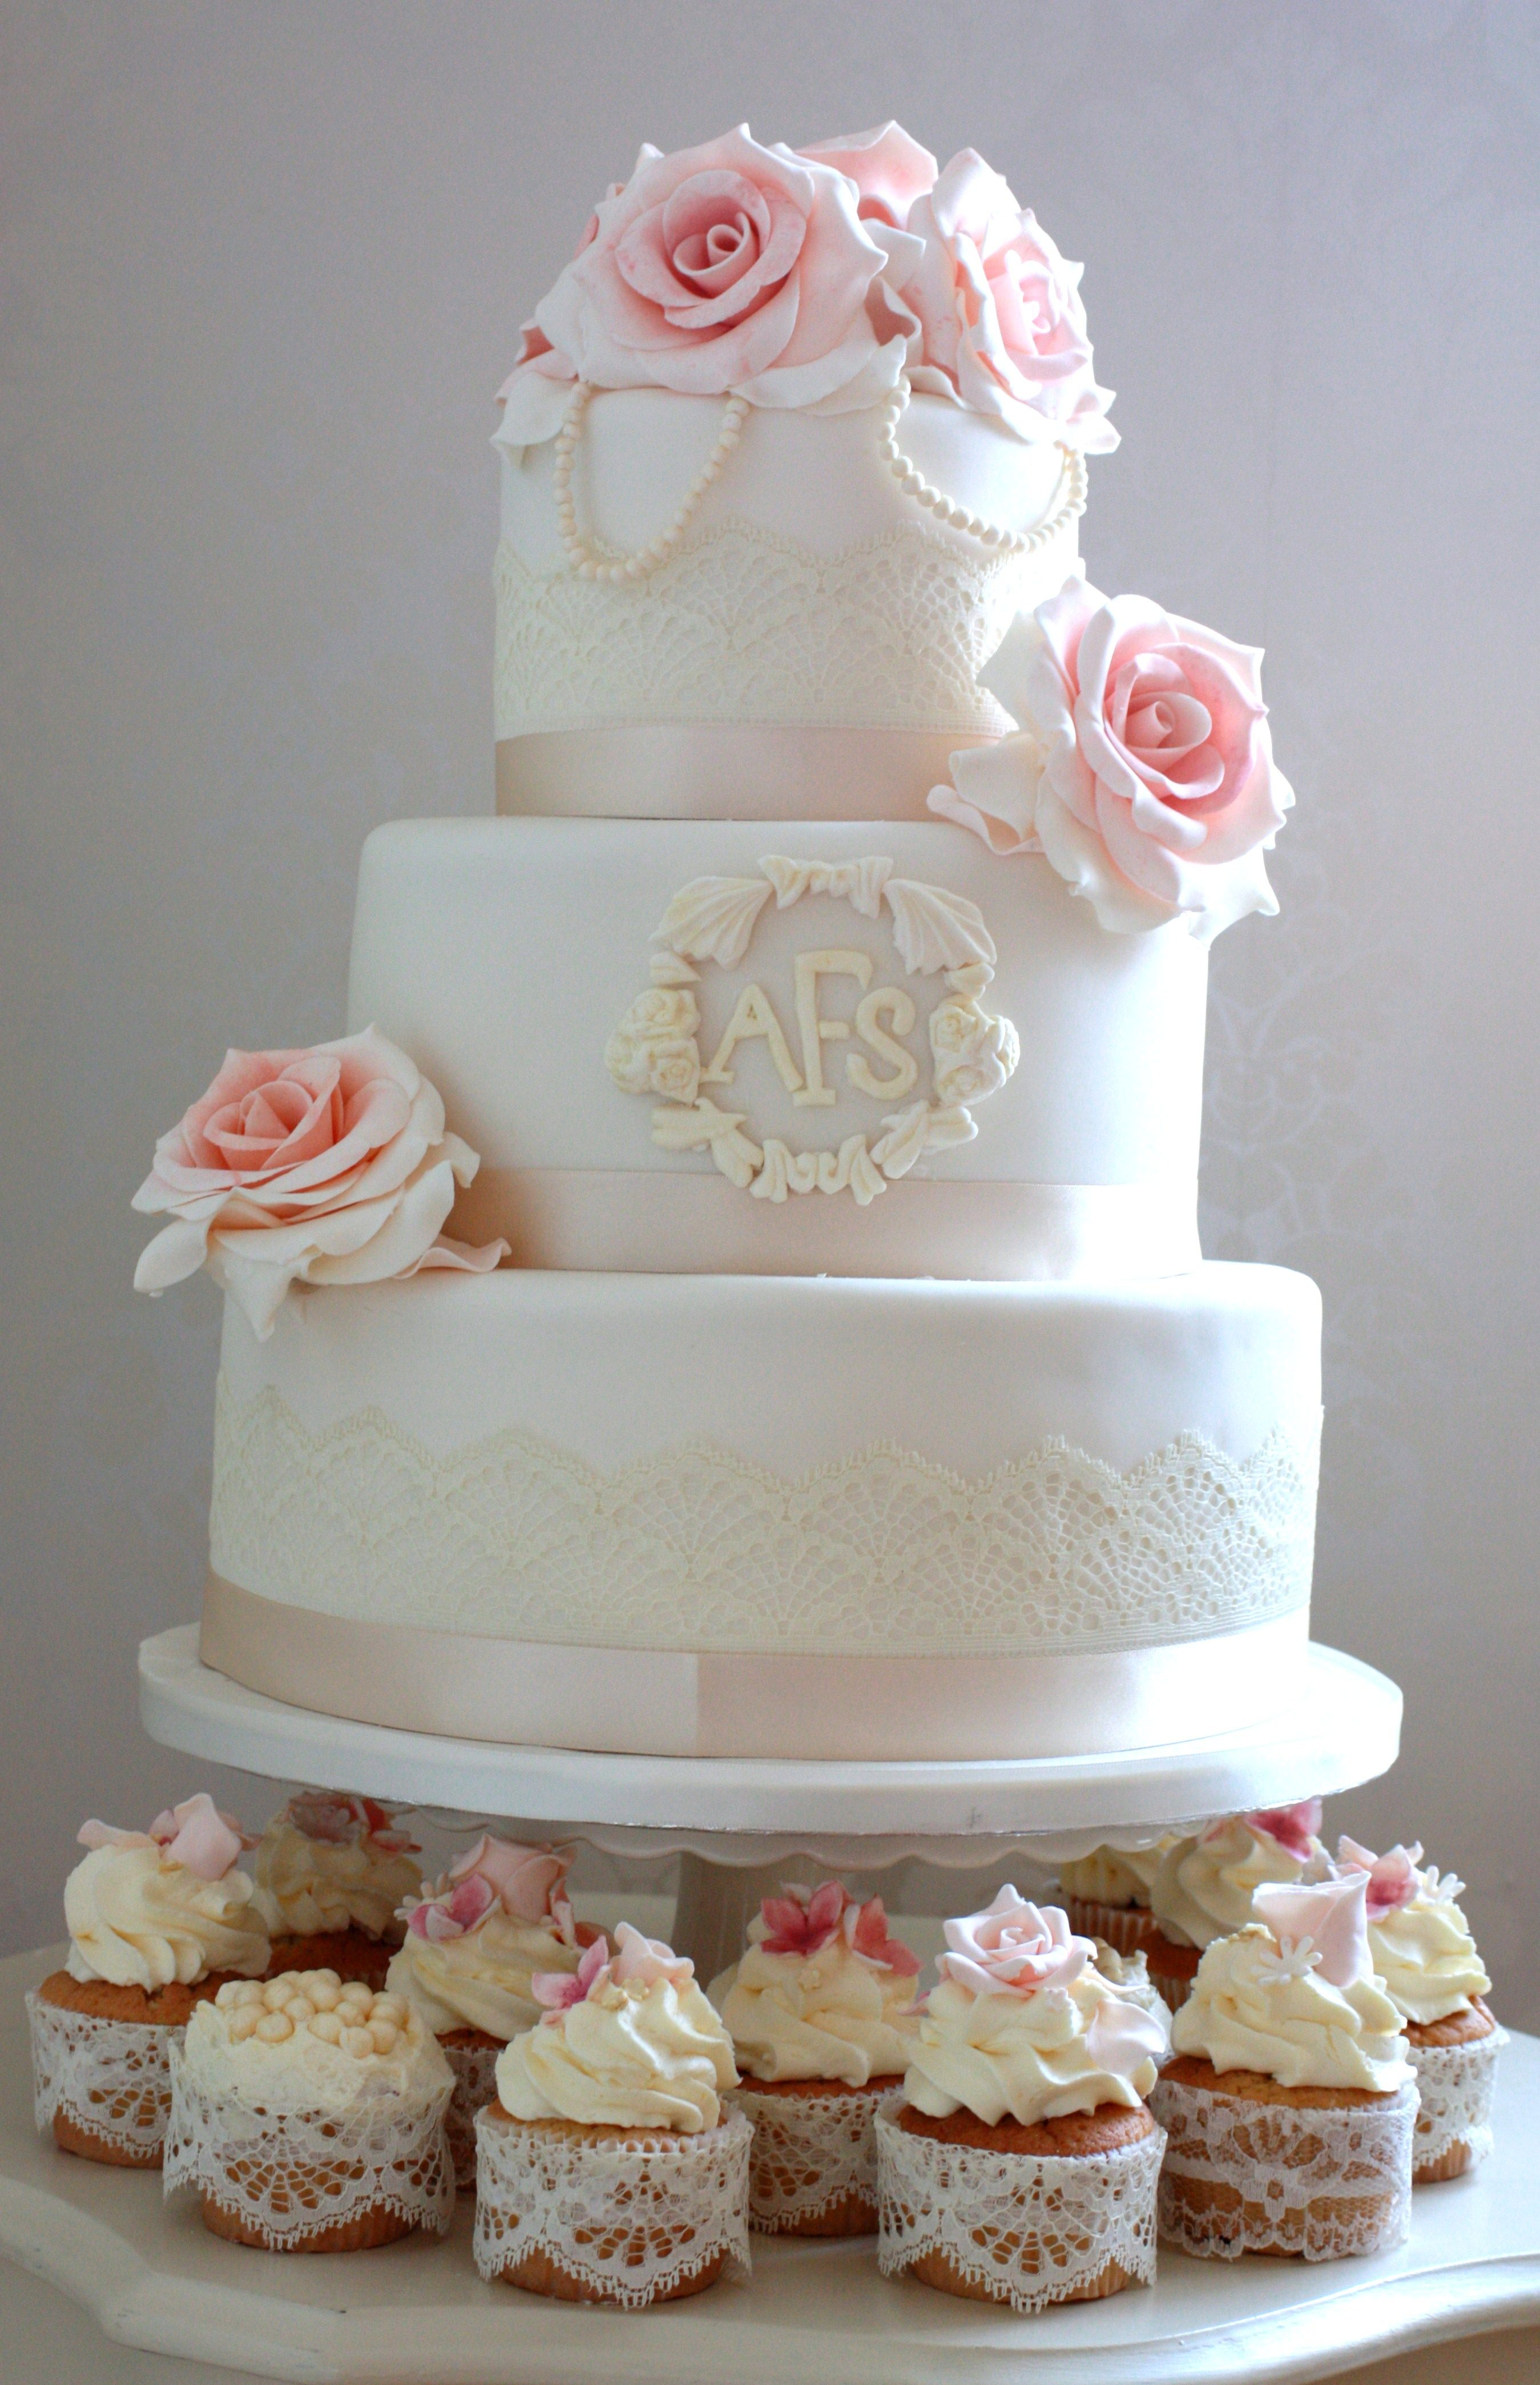 3 Tier Vintage Wedding Cake With Blush Pink Roses Pearls And Name Plaque Complete With Rose Wedding Cakes With Cupcakes Reception Cake Wedding Cakes Vintage